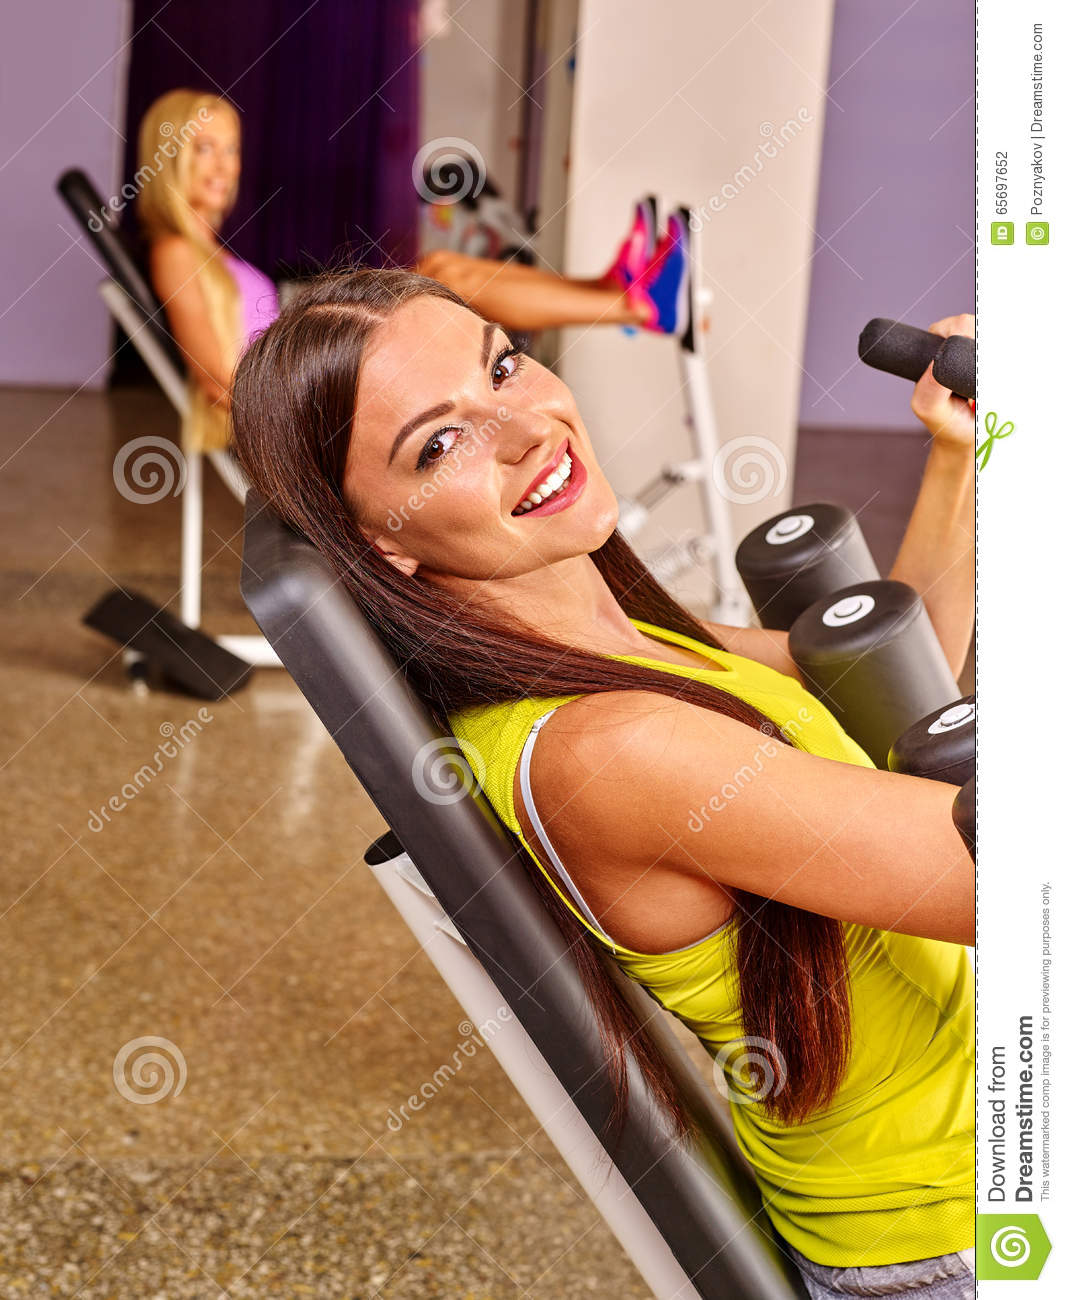 Amino Z Team Womens Weight Lifting Bodybuilding Gym: Girls Workout On Leg Press In Sport Gym. Stock Photo